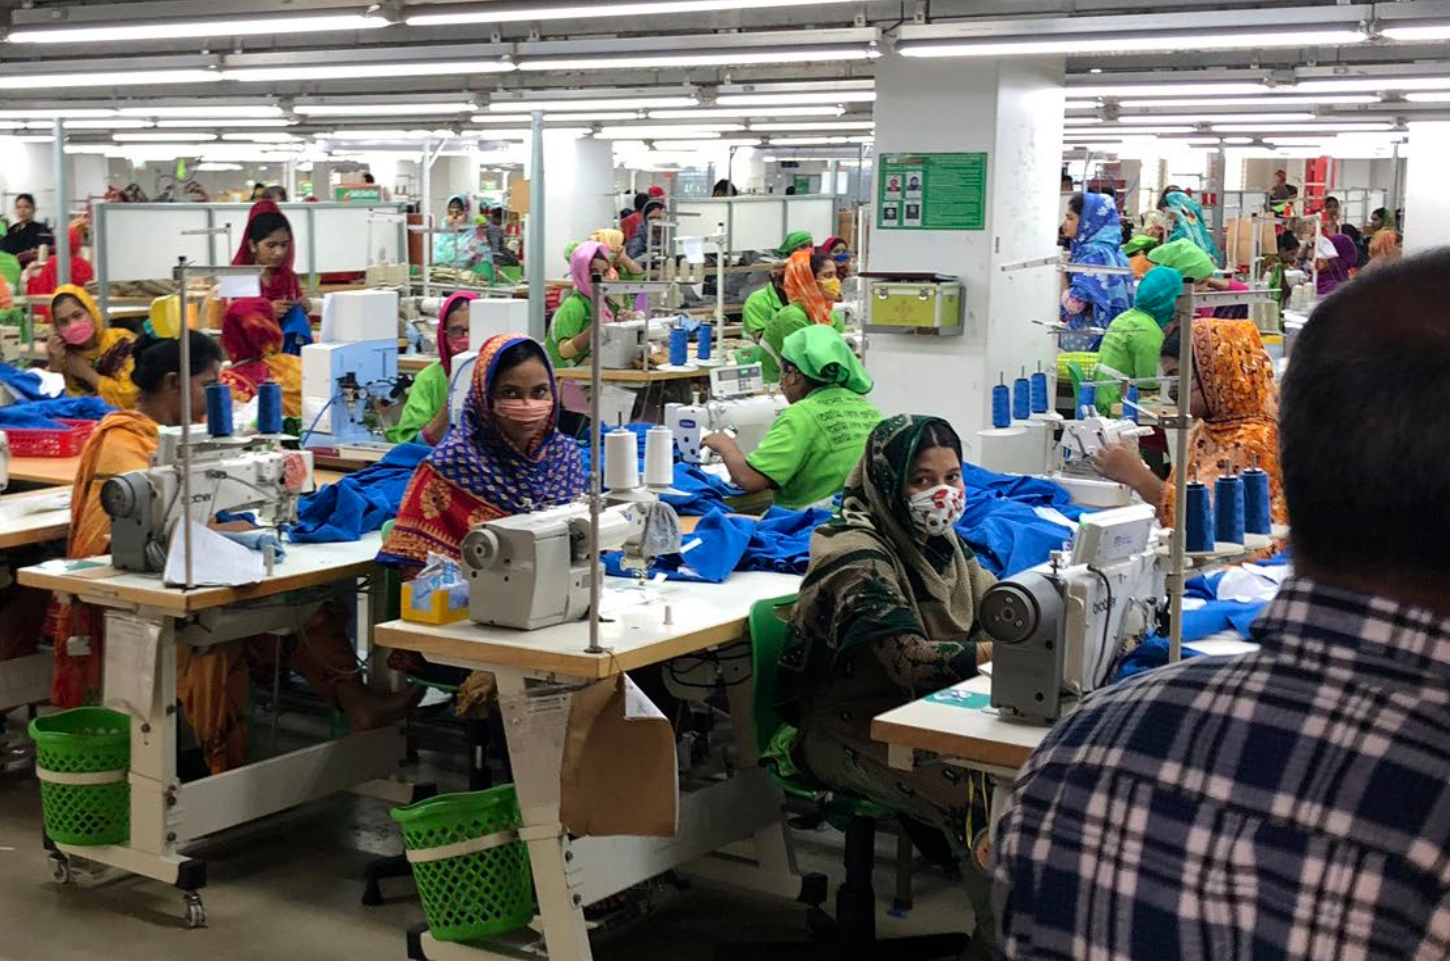 Workers in a garment production factory in Bangladesh